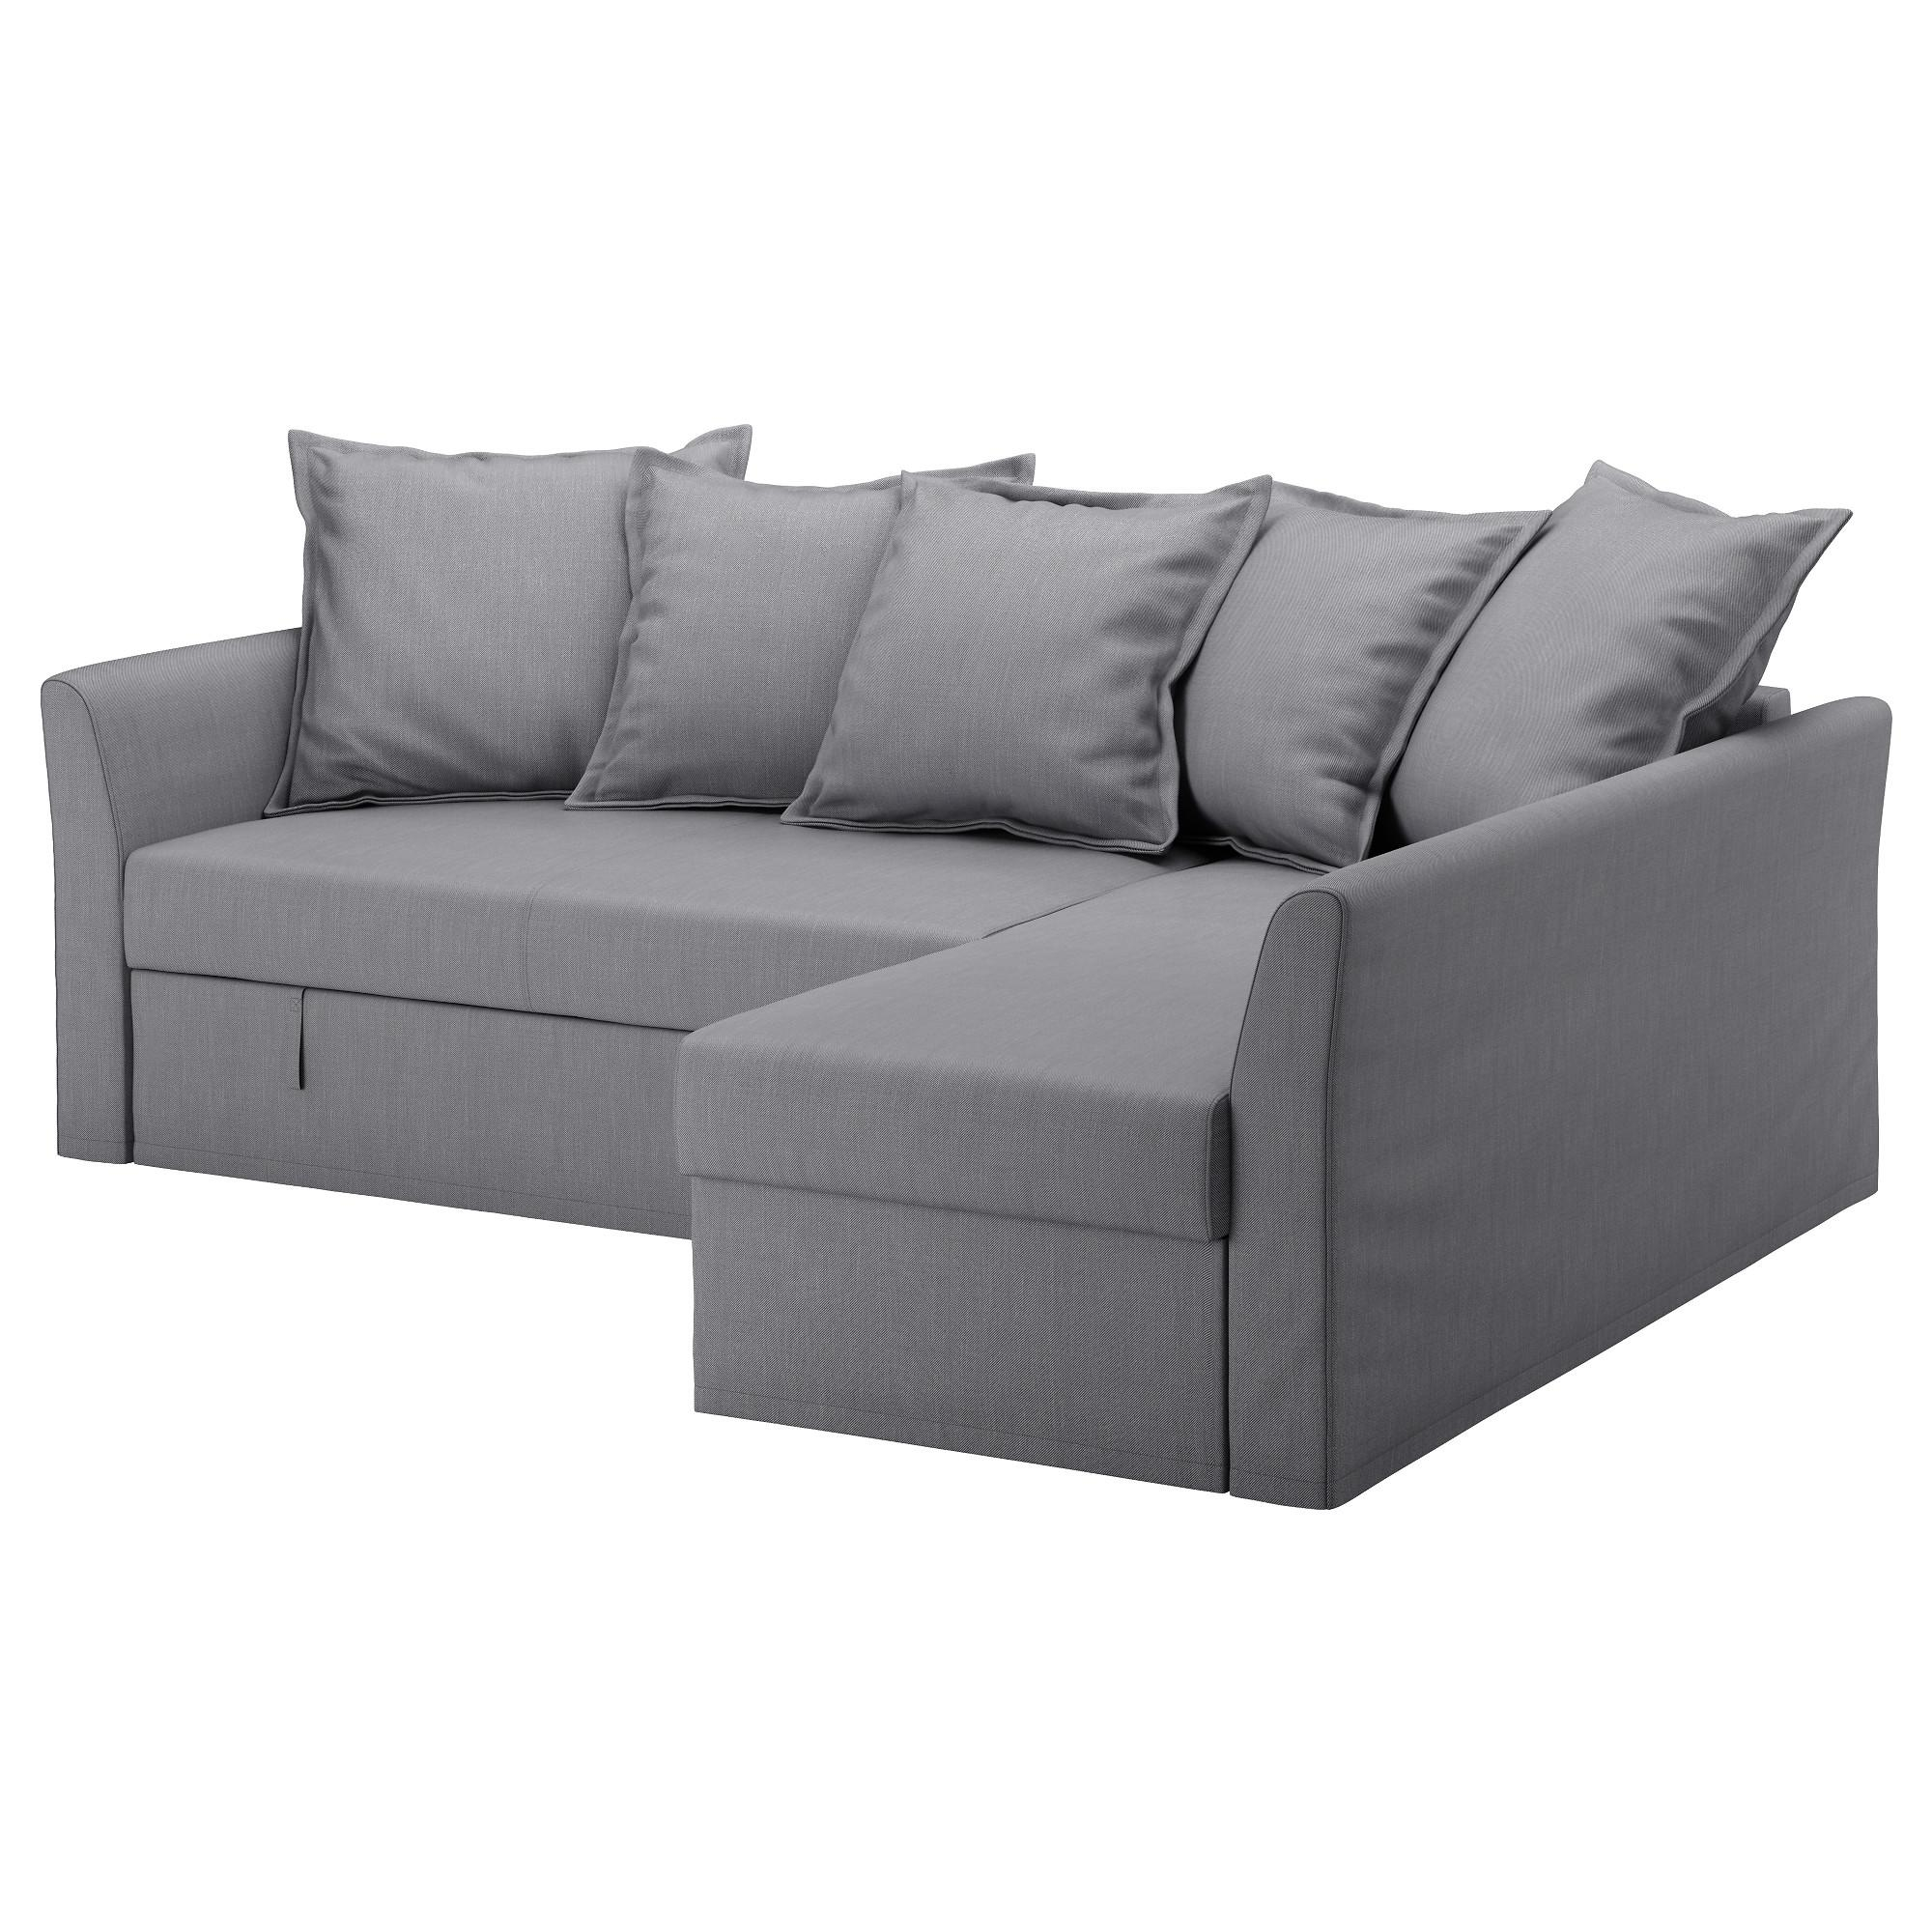 Holmsund Cover For Sleeper Sectional, 3 Seat – Nordvalla Medium Within Ikea Sleeper Sofa Sectional (Image 9 of 20)